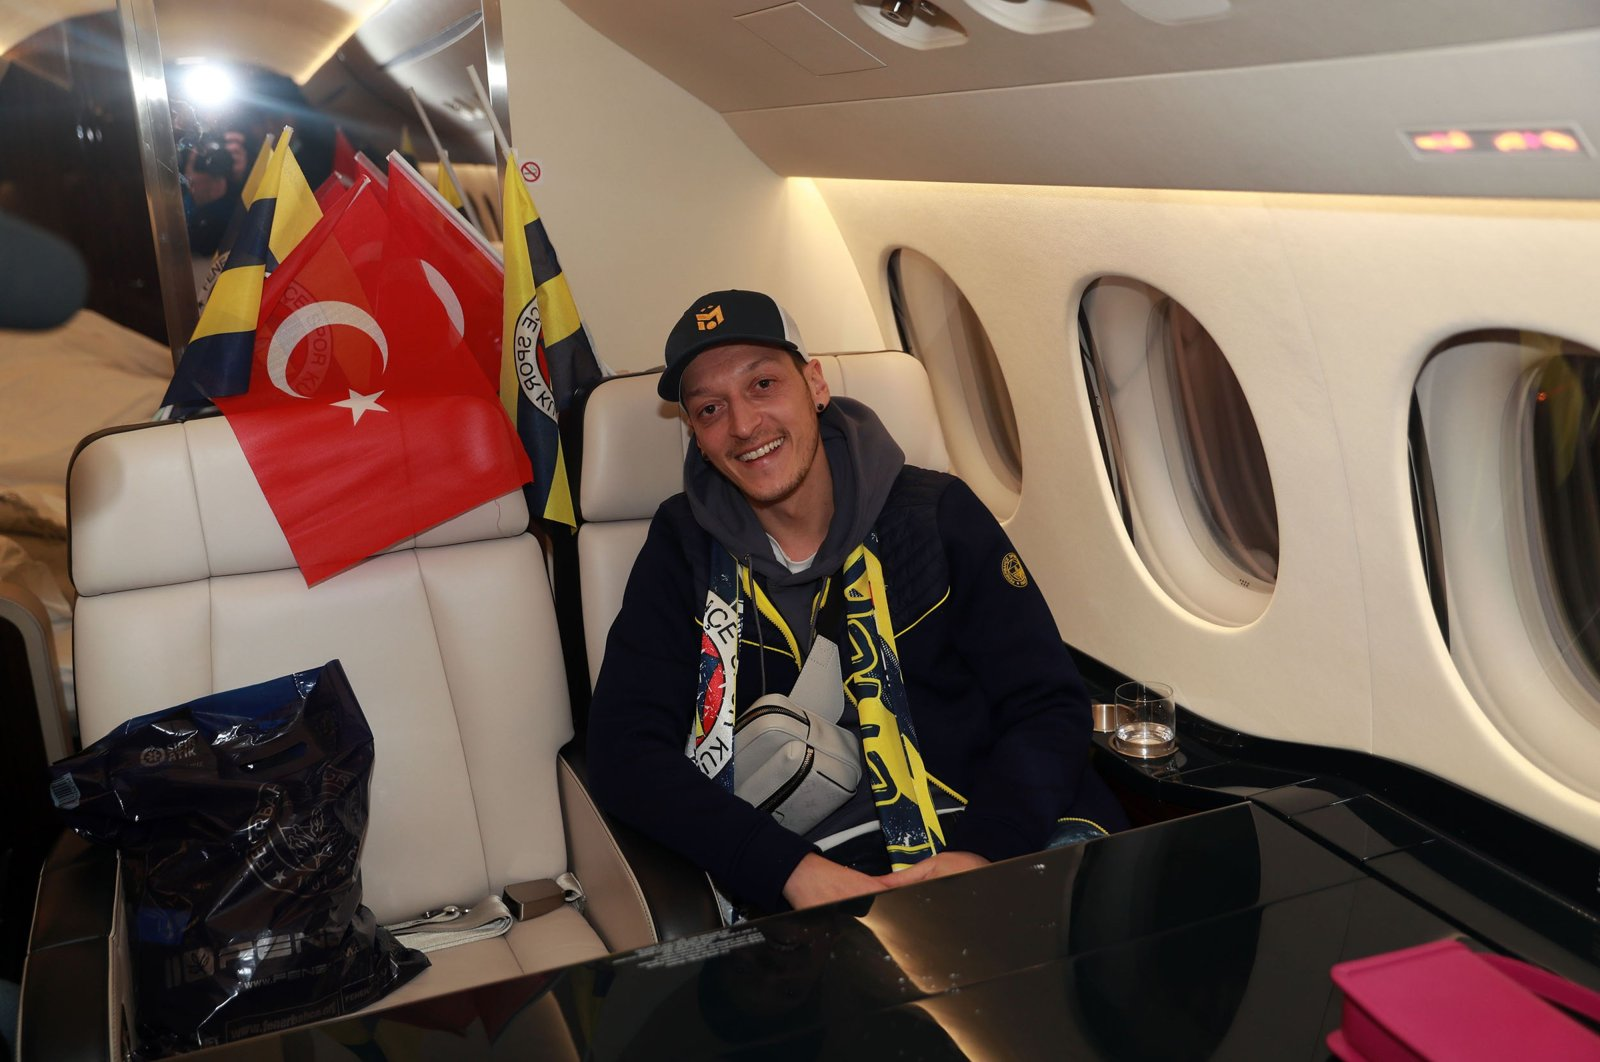 German midfielder Mesut Özil onboard a private jet on his way to join Turkish Süper Lig side Fenerhabçe, Atatürk International Airport, Istanbul, Turkey, Jan. 18, 2021. (AFP Photo)